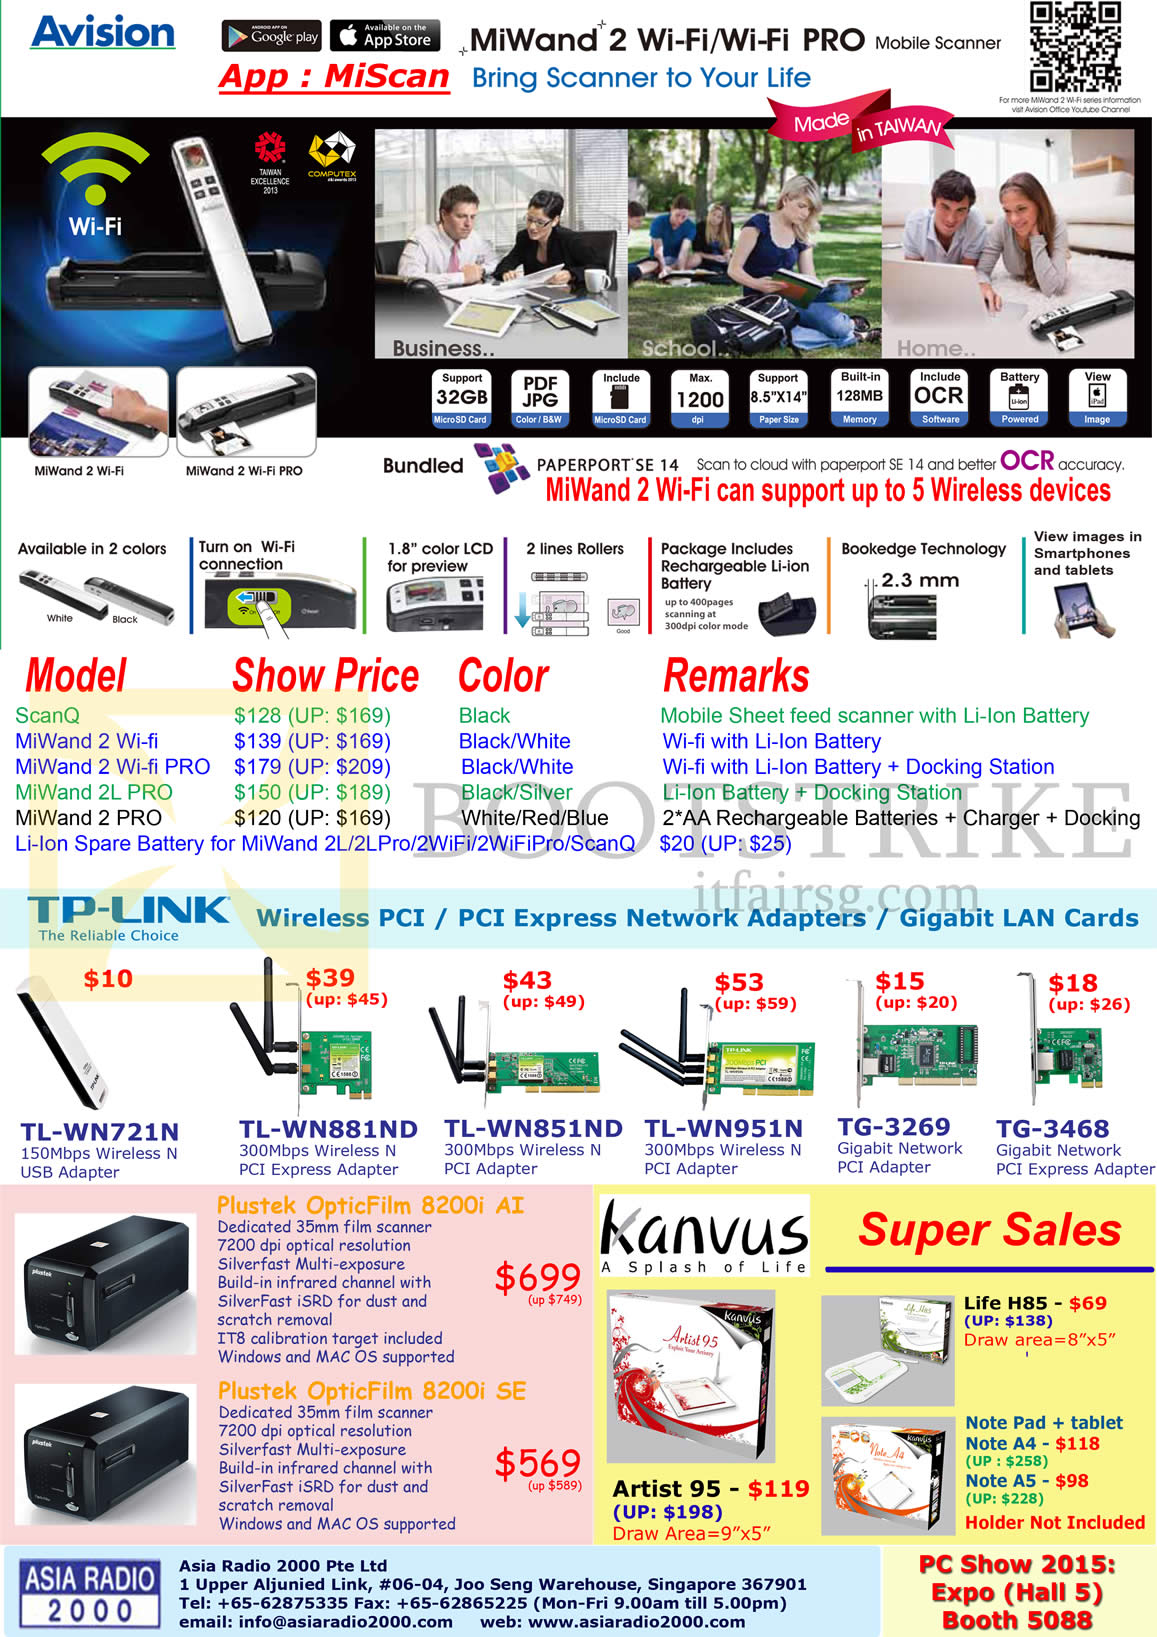 Asia Radio Tp Link Networking Avision Wireless Pci Miwand Tg 3468 Gigabit Express Network Adapter Pc Show 2015 Price List Image Brochure Of